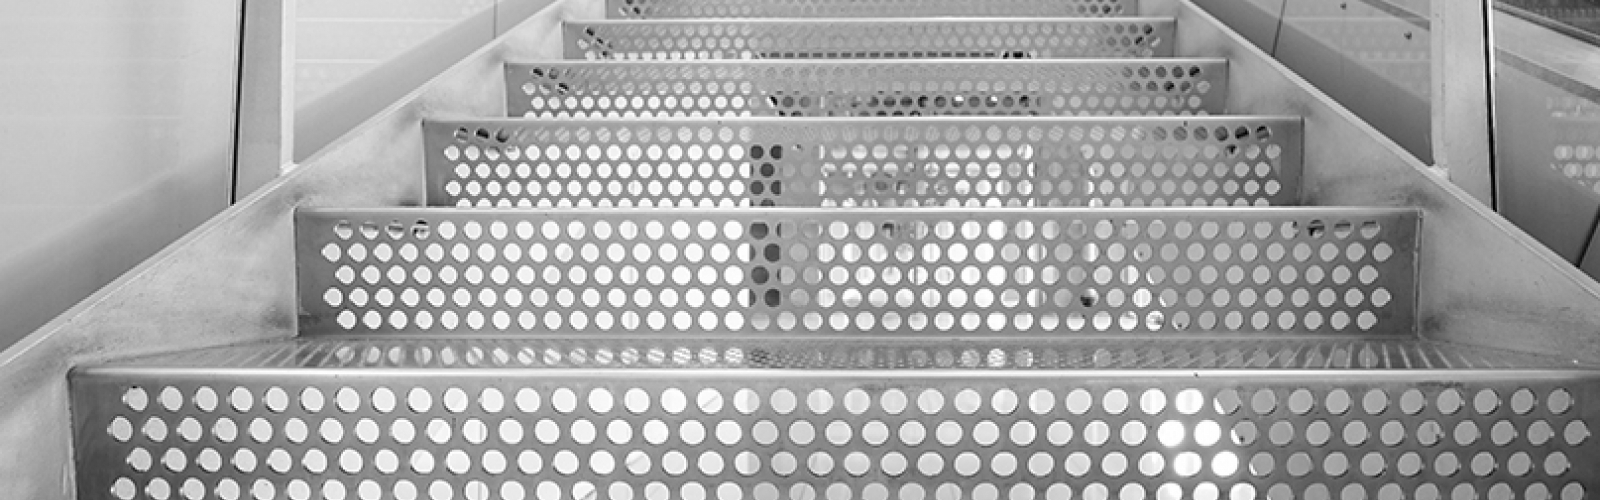 Stair Treads Amp Risers Accurate Perforating